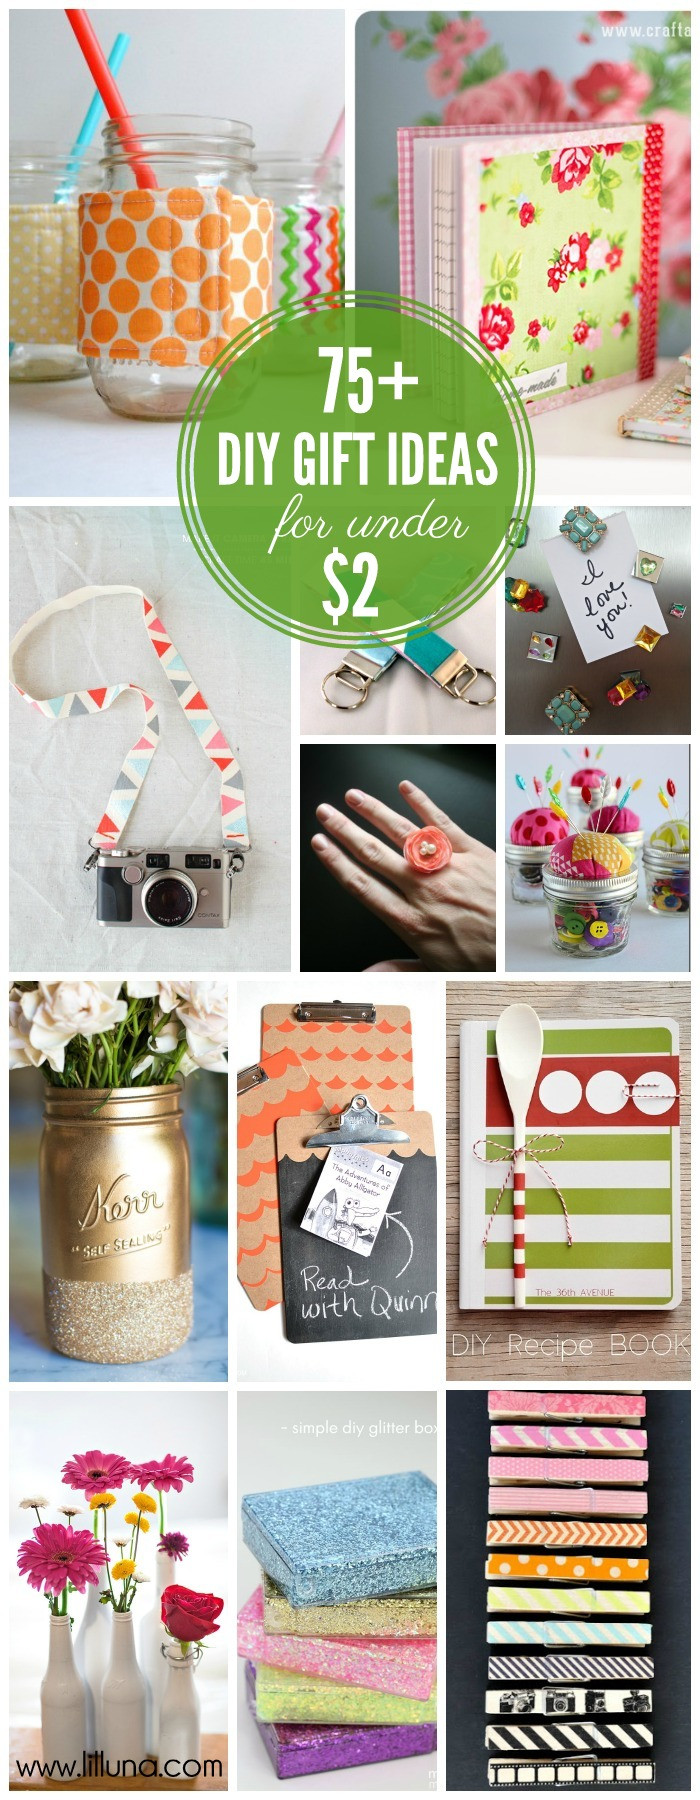 Best ideas about Cheap Gift Ideas . Save or Pin Inexpensive Gift Ideas Now.